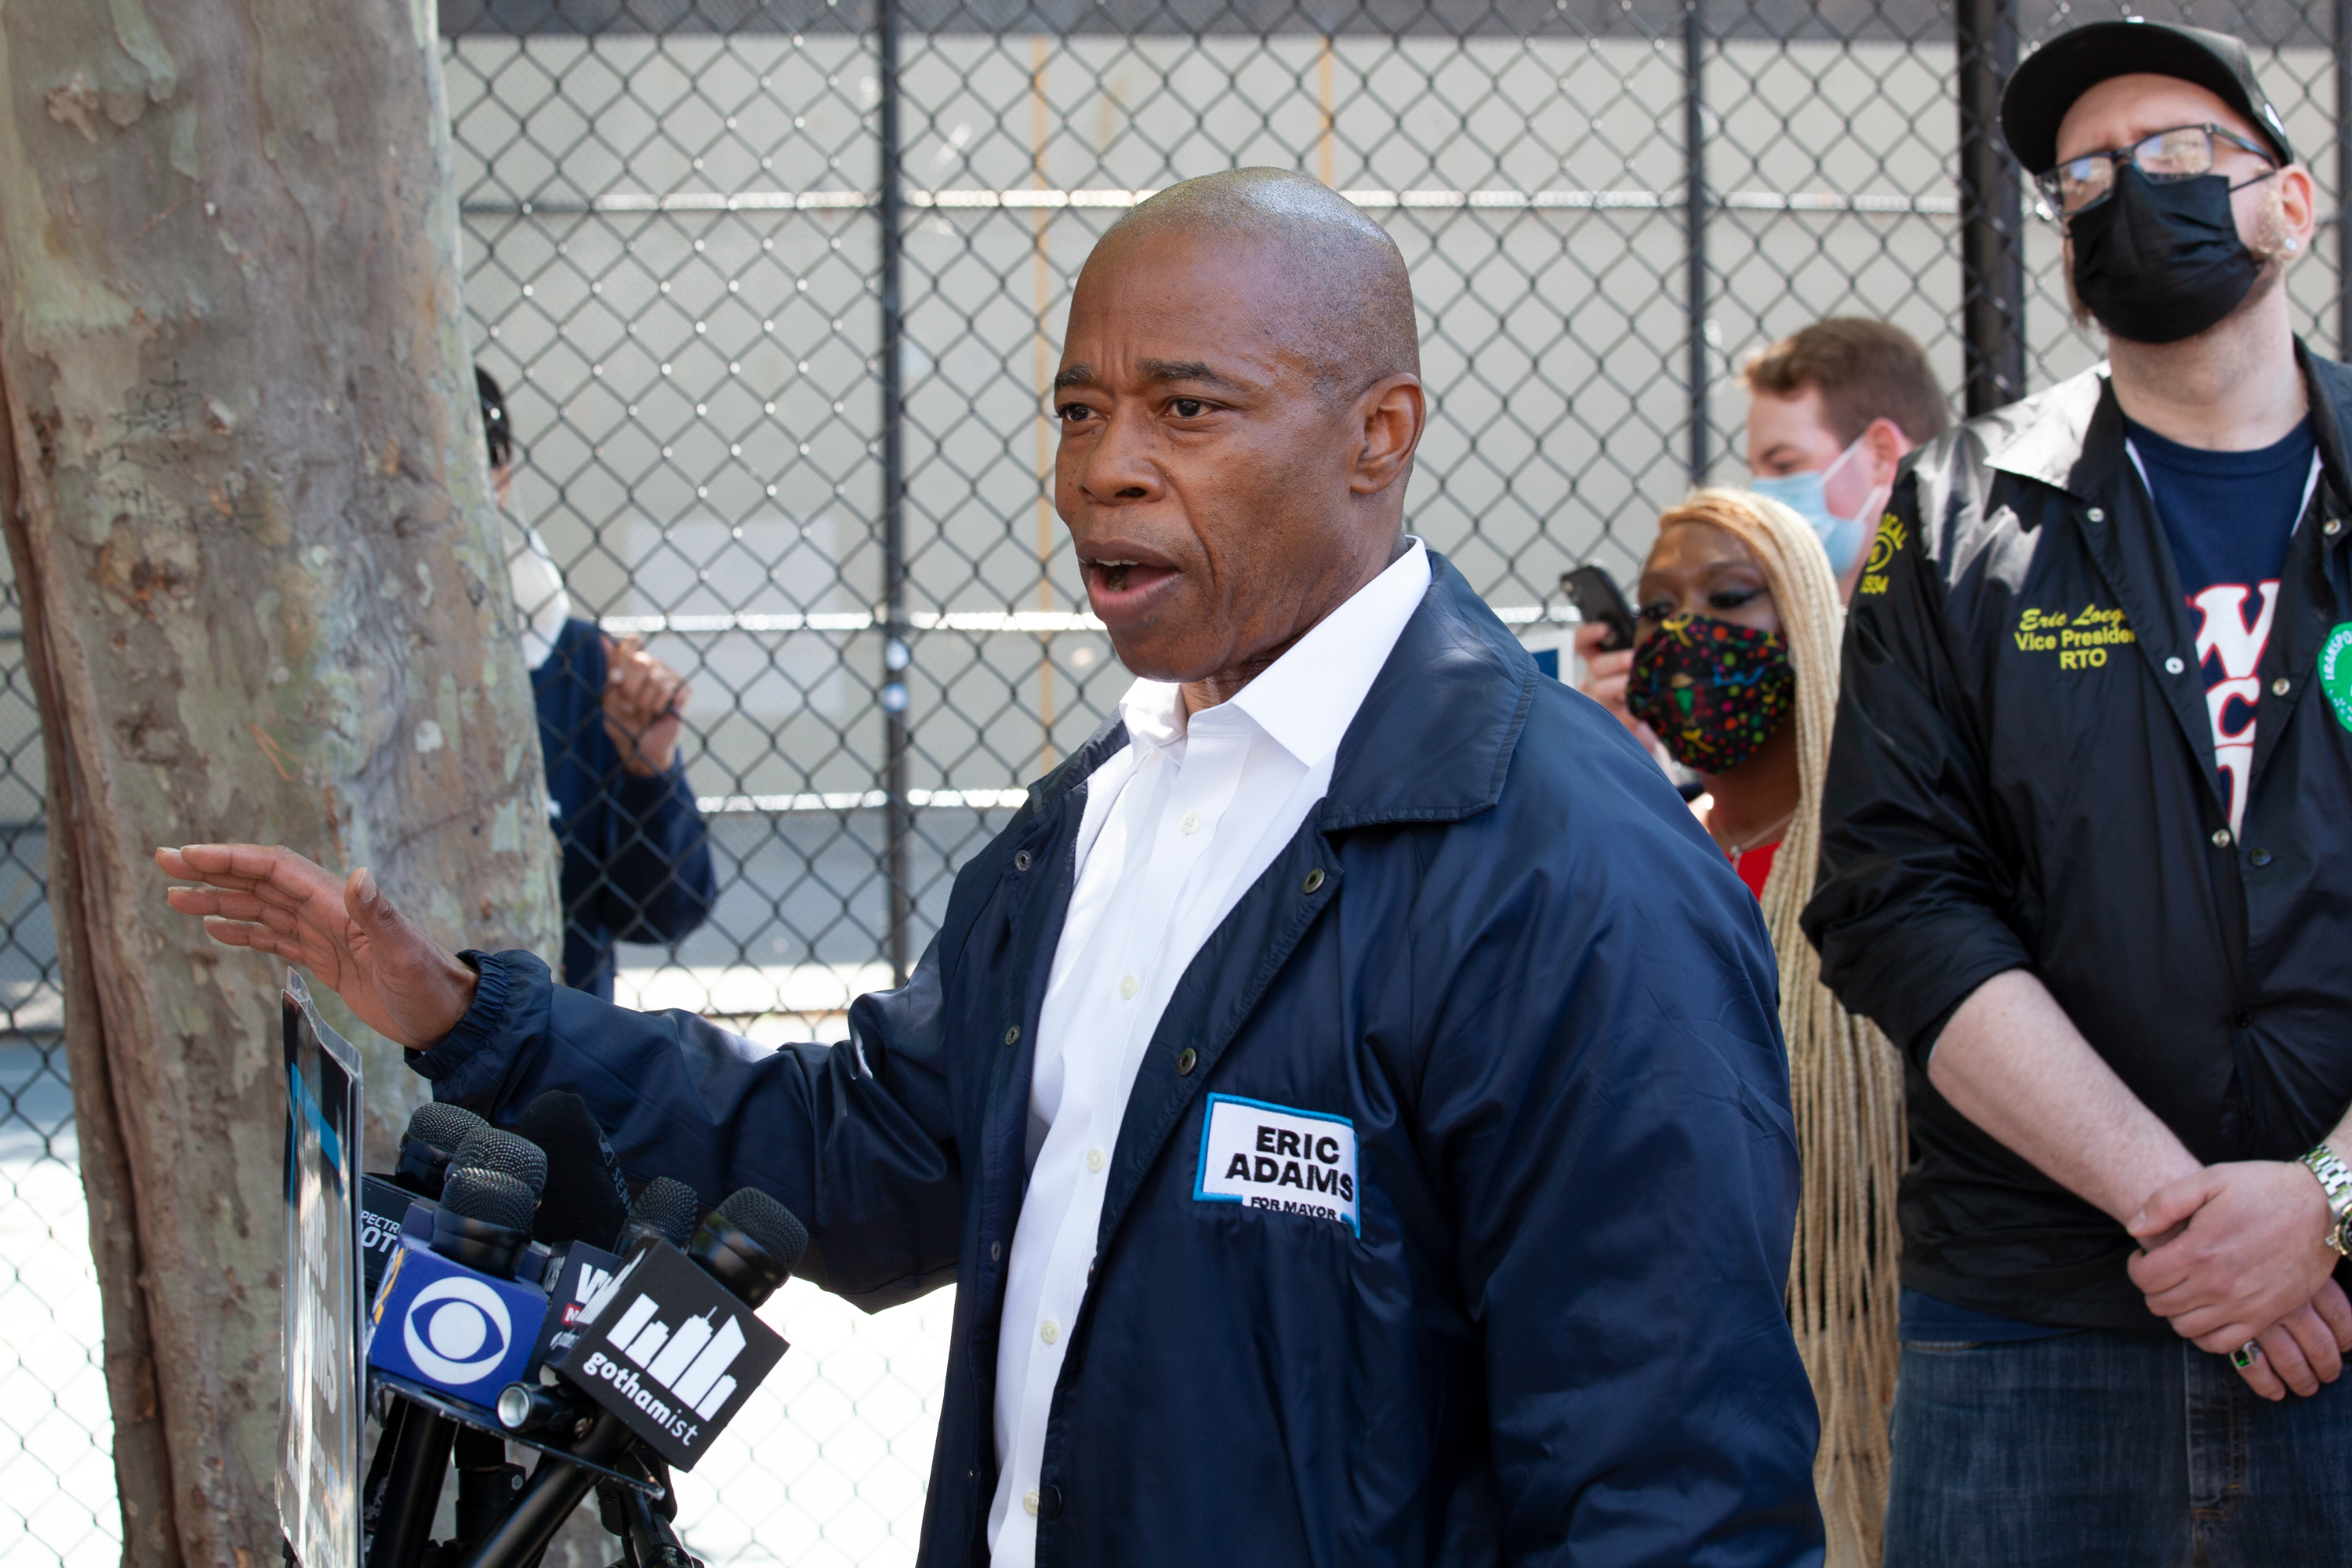 Mayoral candidate Eric Adams speaks outside the West 4th Street station in Manhattan about subway safety, May 18, 2021.